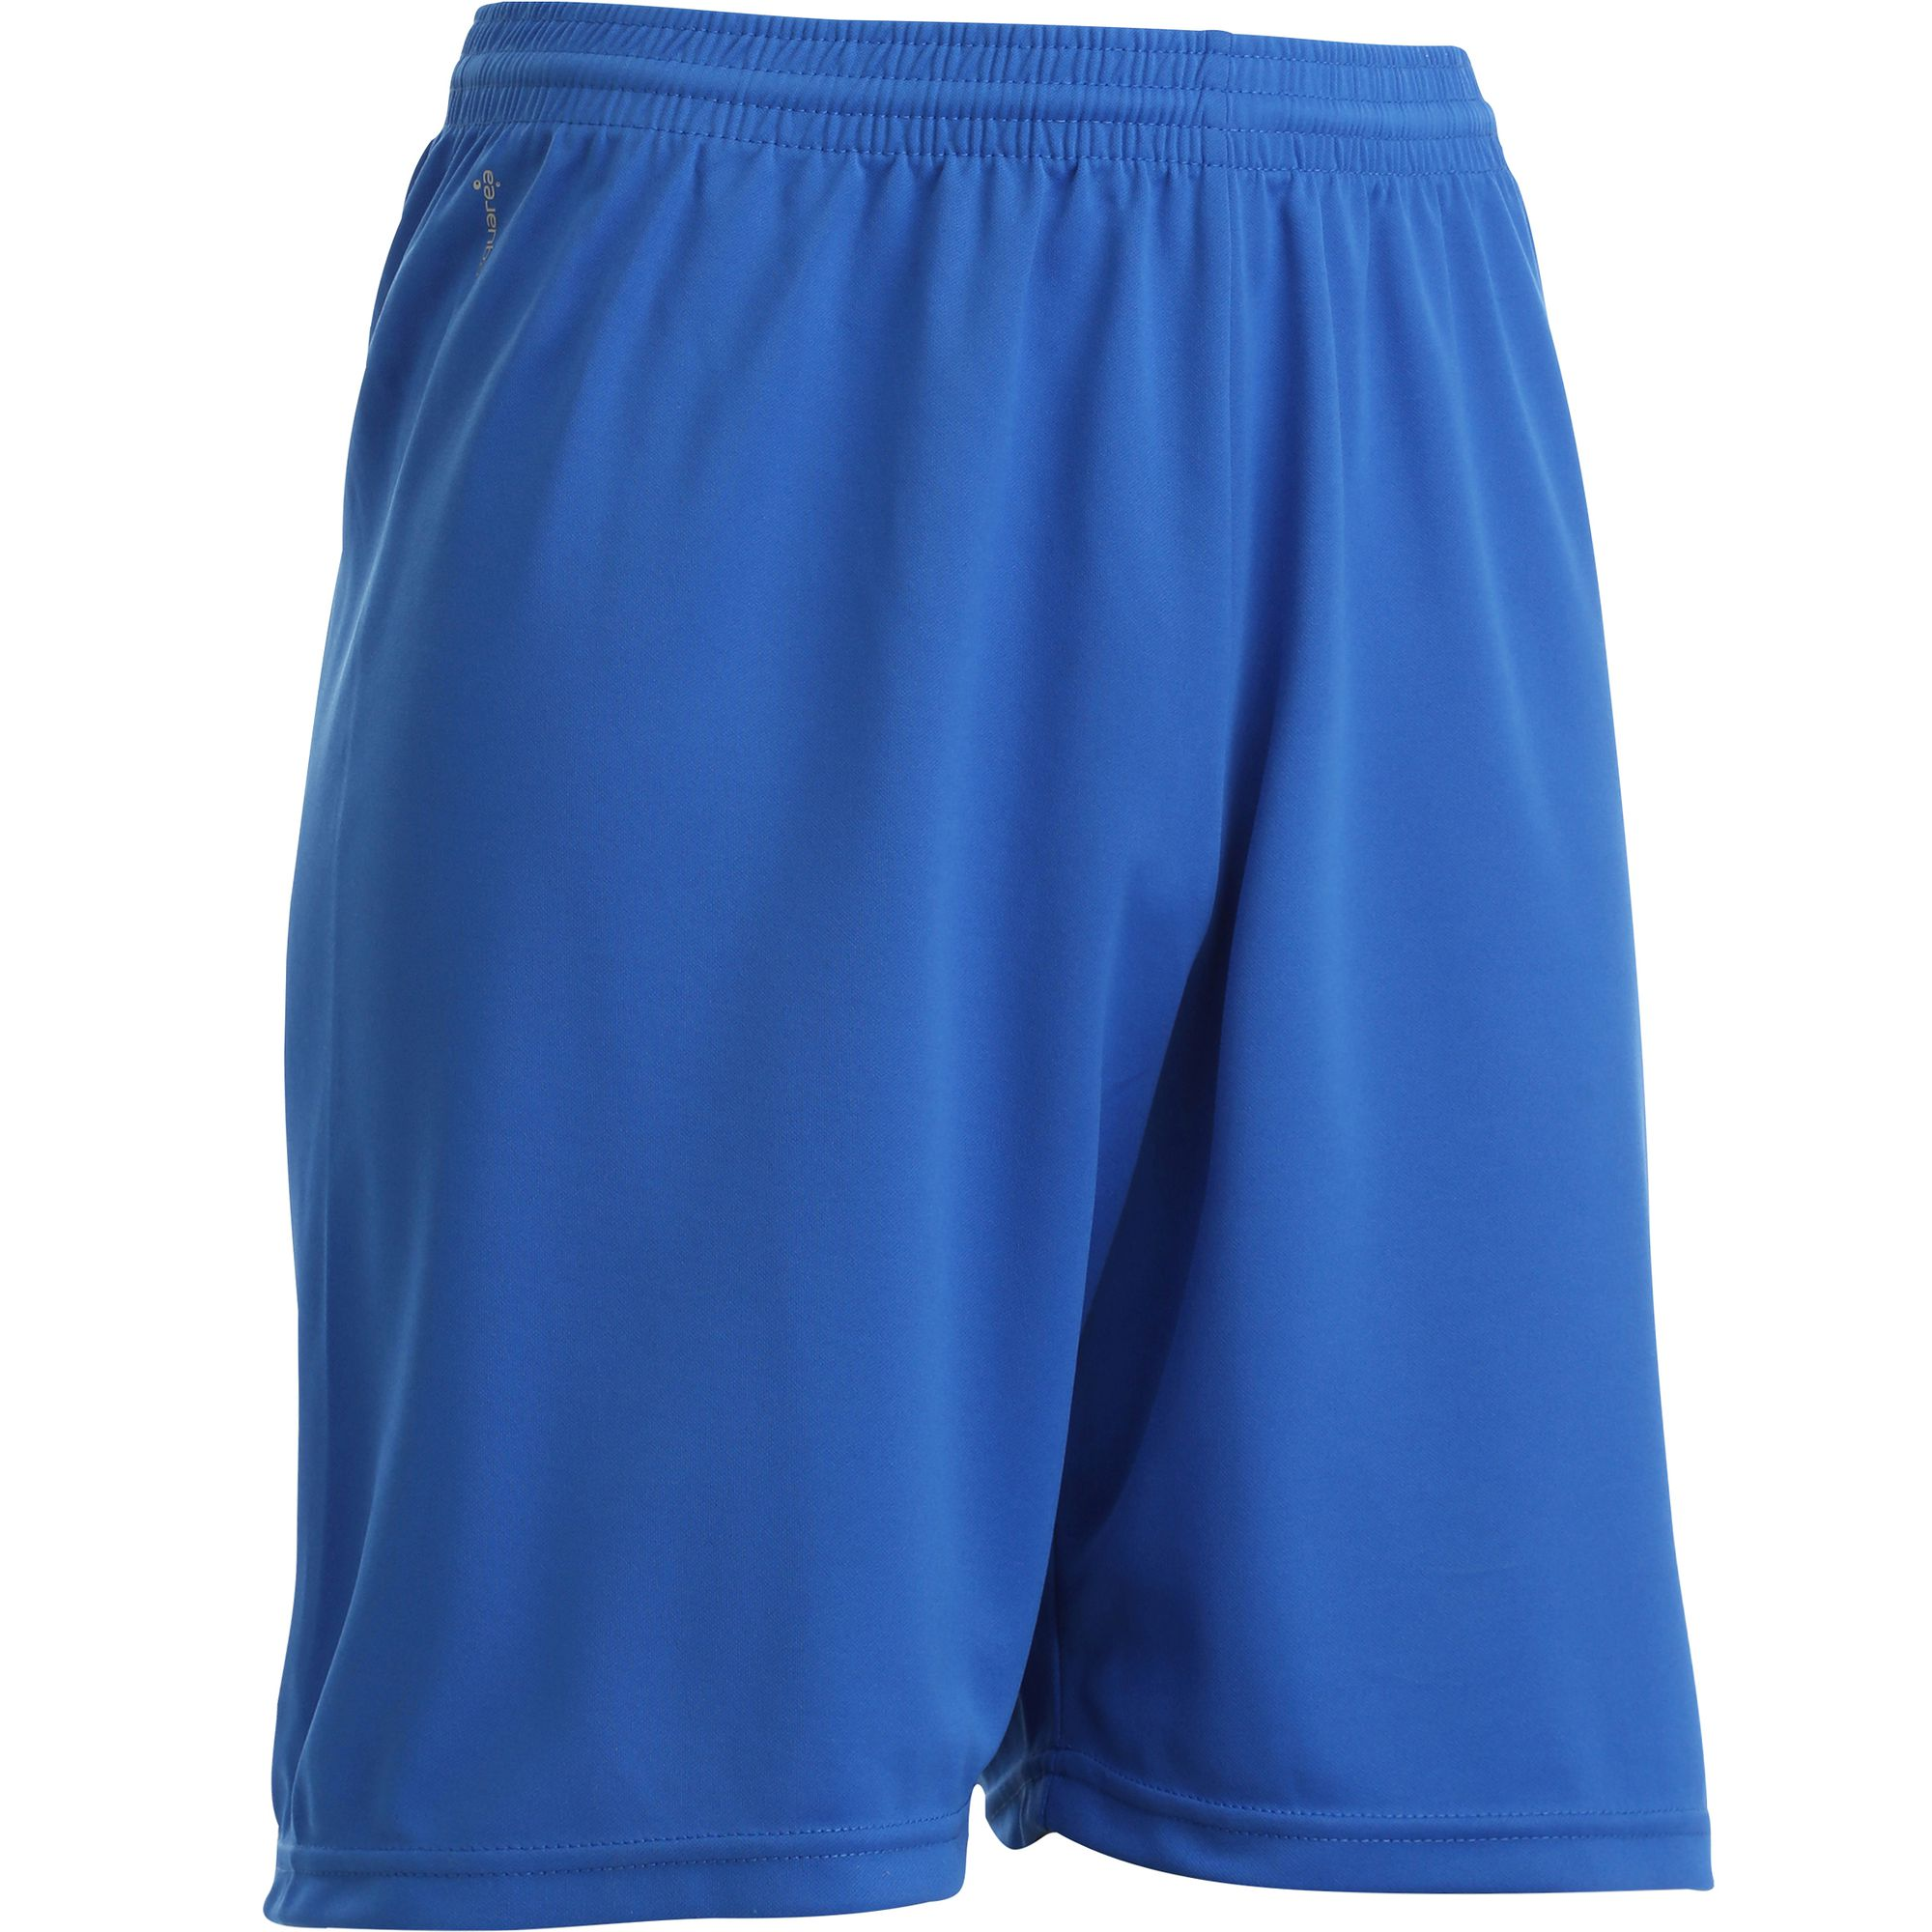 Short de football adulte F100 bleu